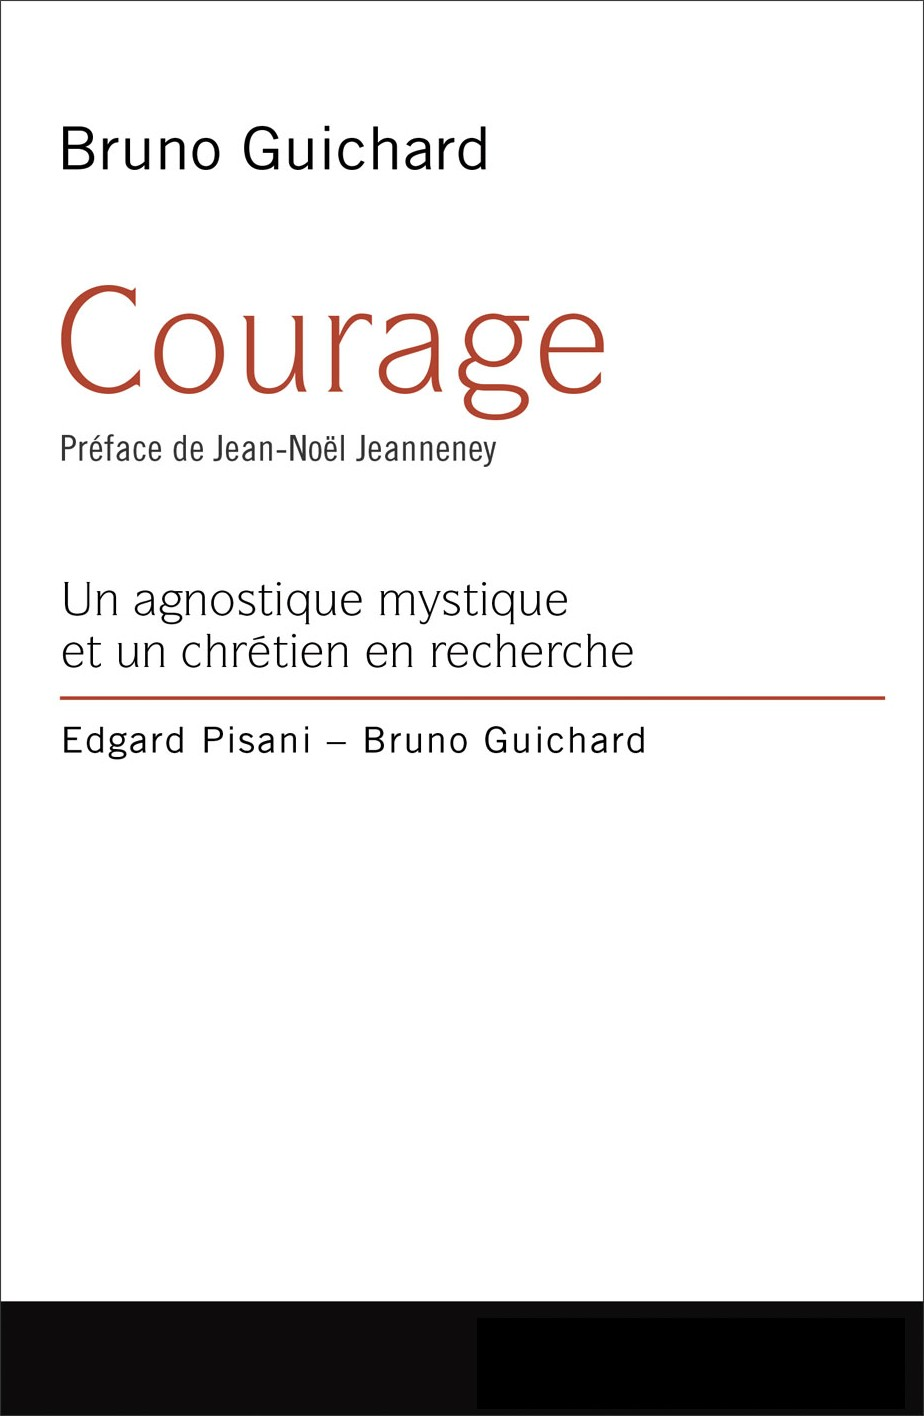 Bruno Guichard, Courage